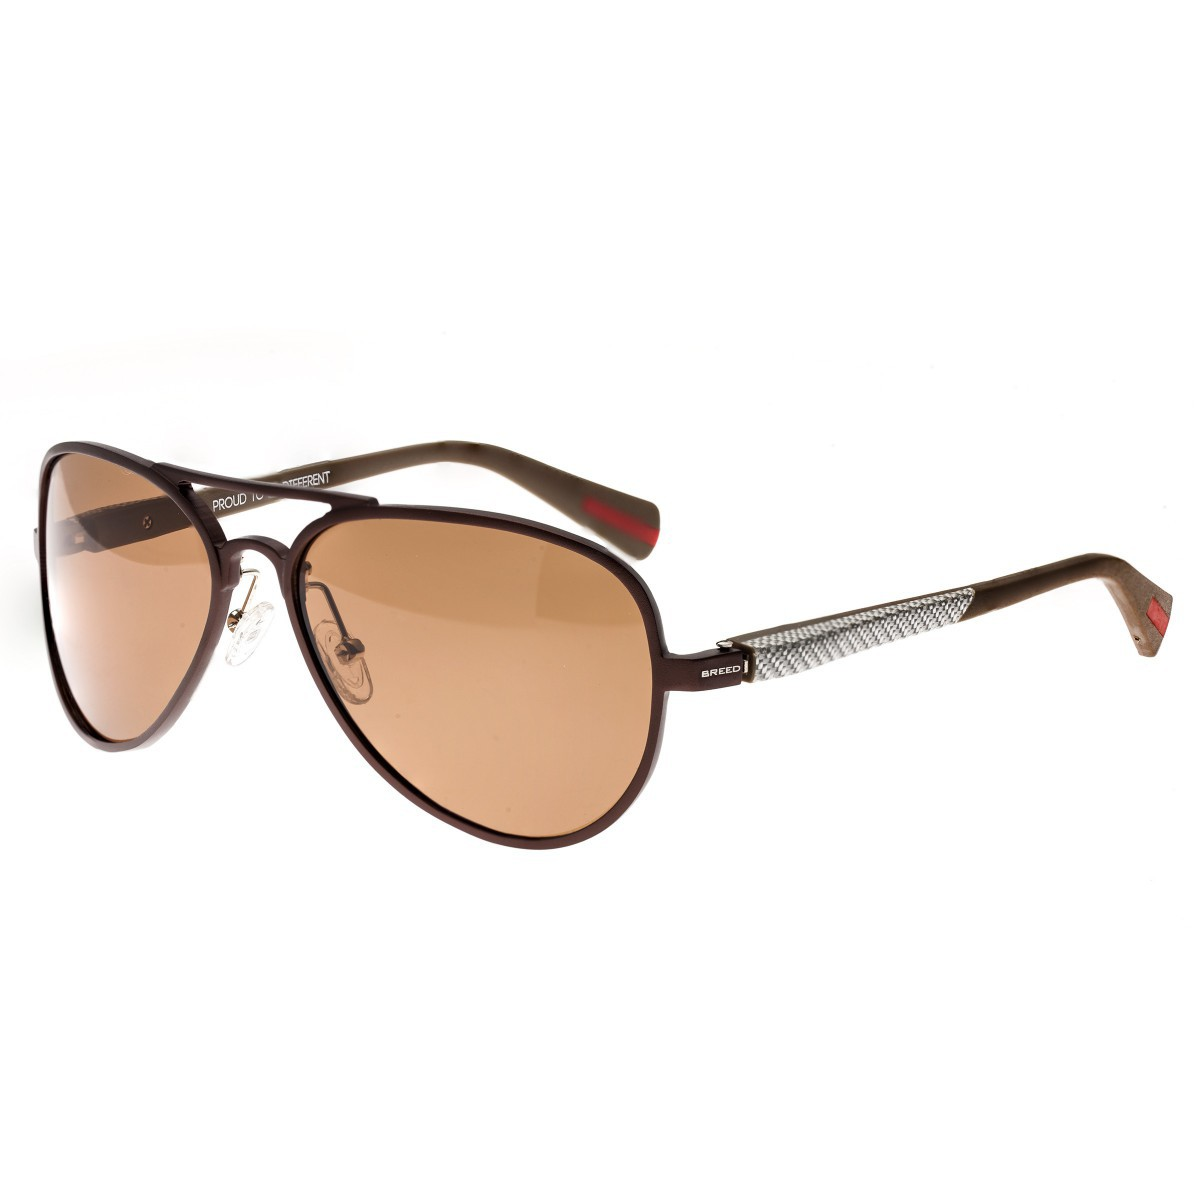 Breed Dorado Titanium Polarized Sunglasses - Brown/Brown BSG030BN